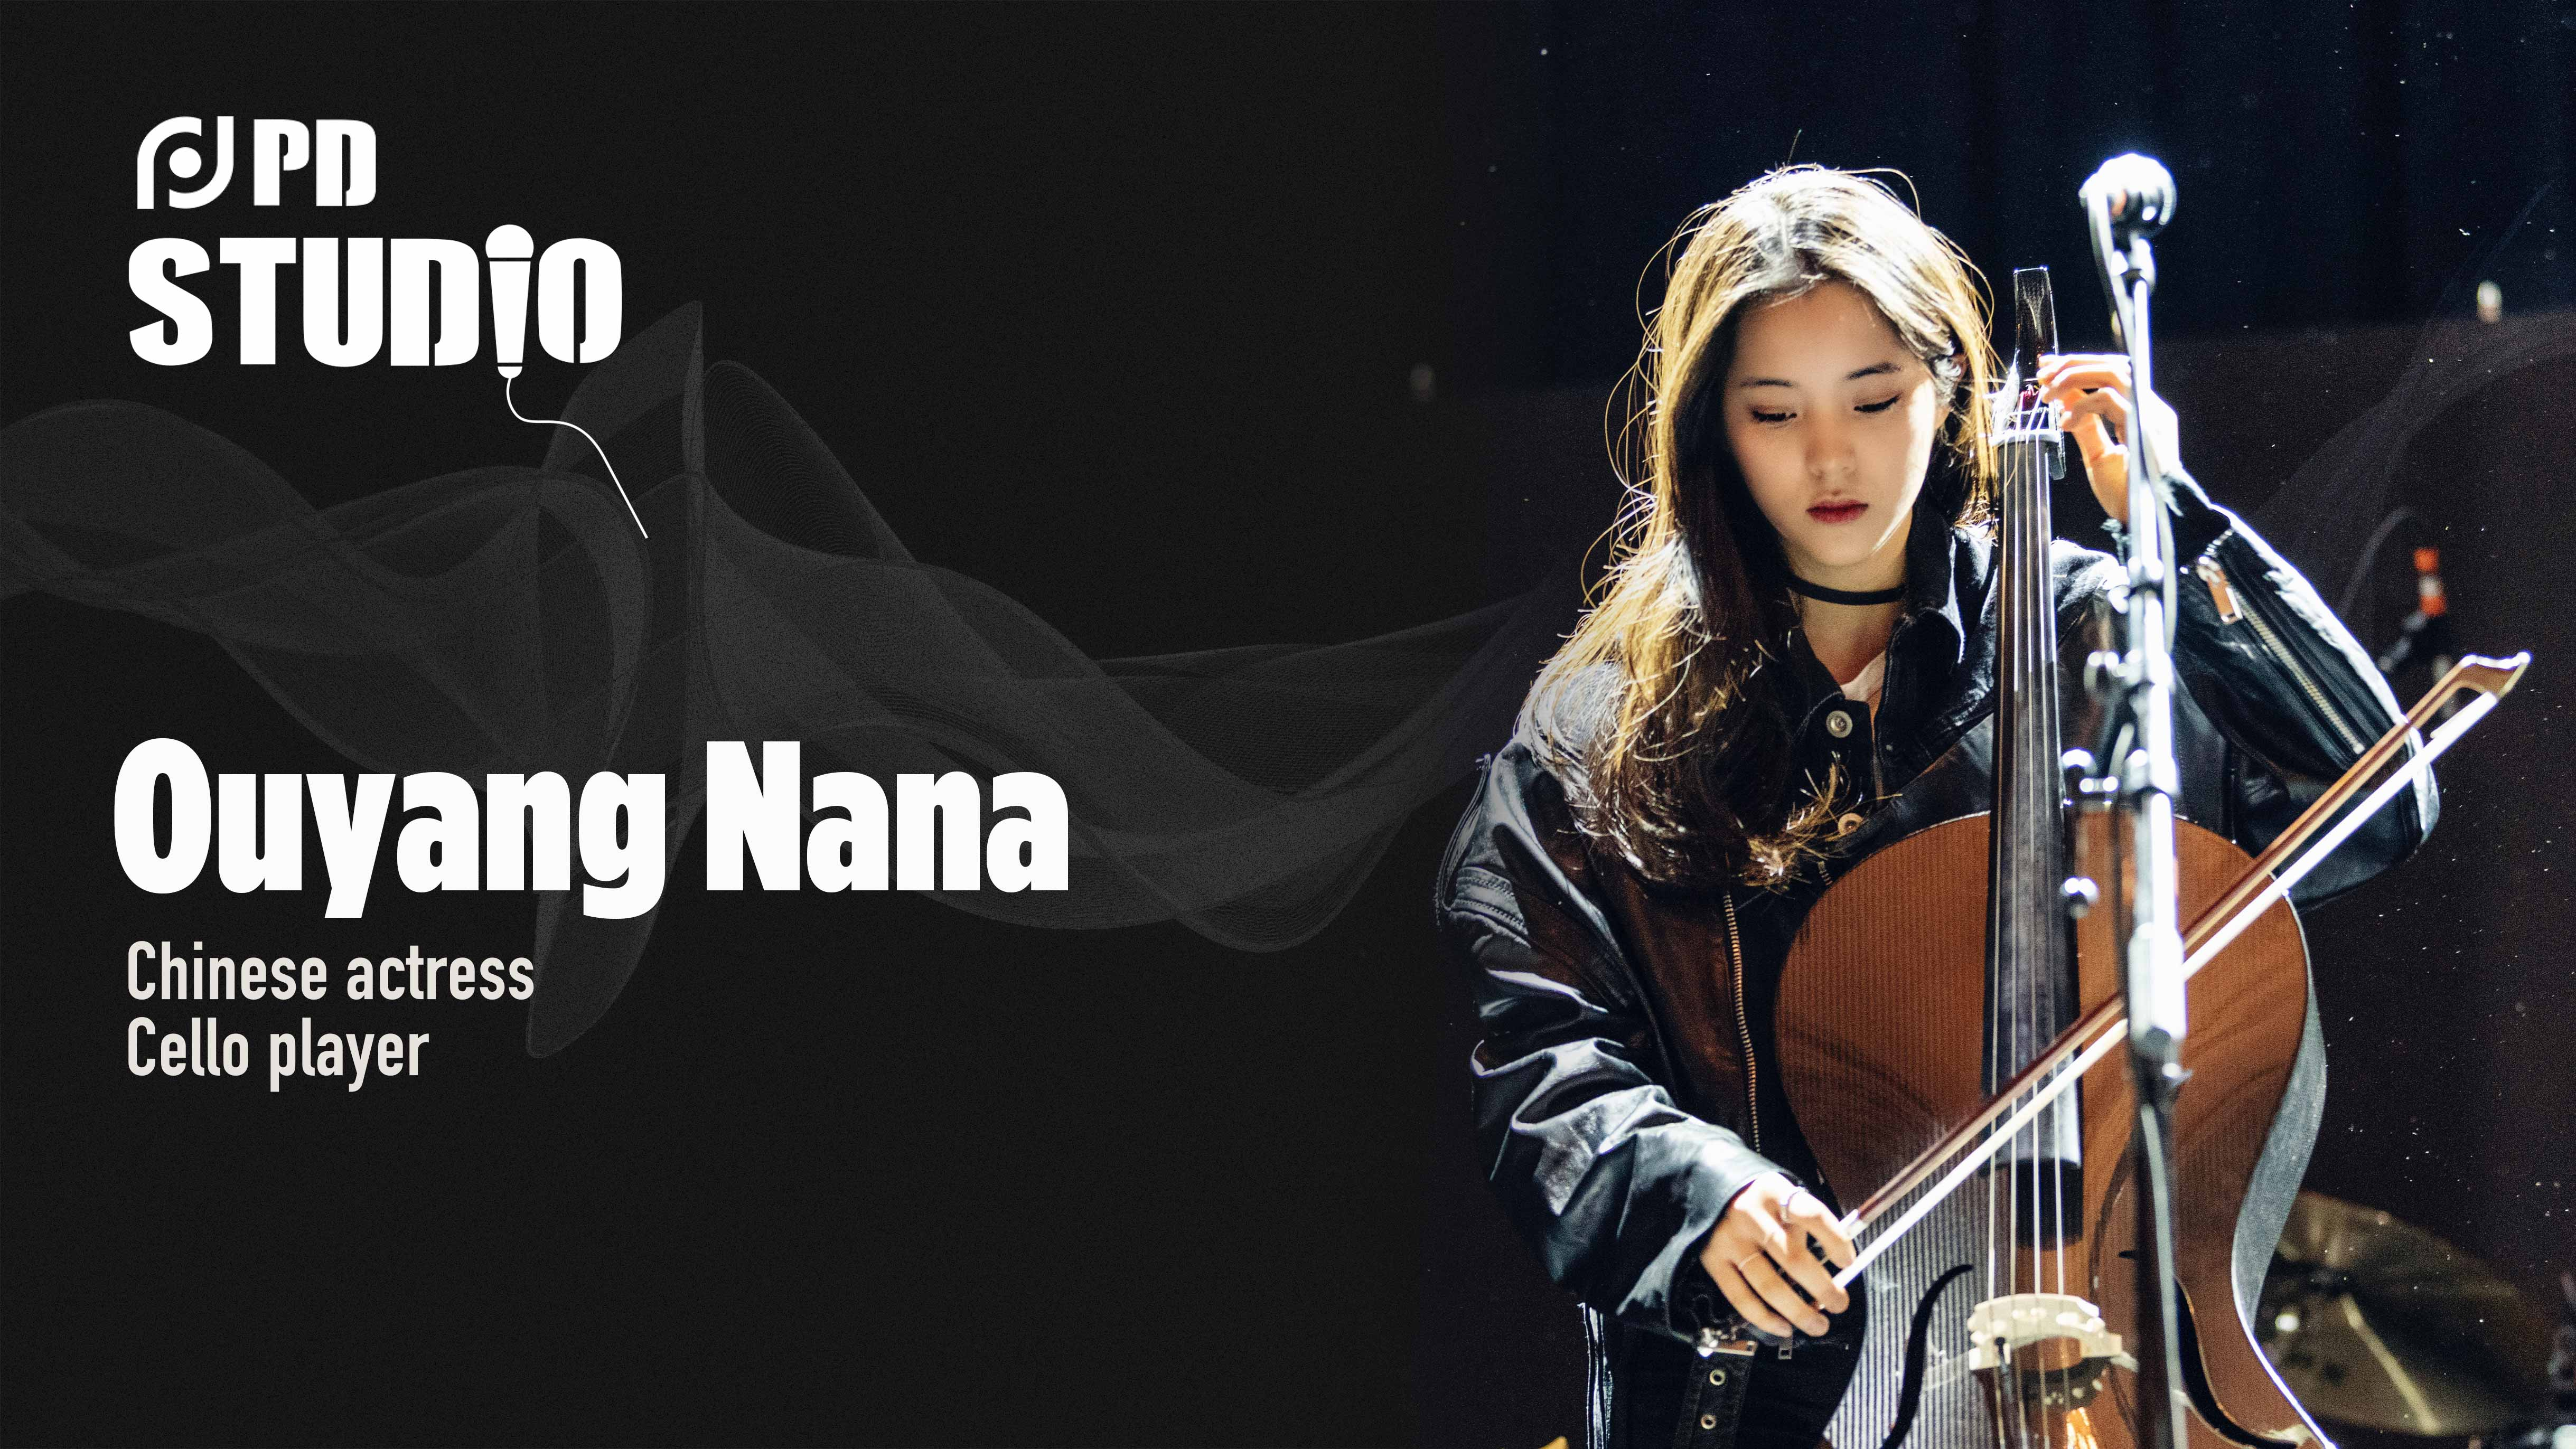 PD Studio | Ouyang Nana: Music is a language that connects people